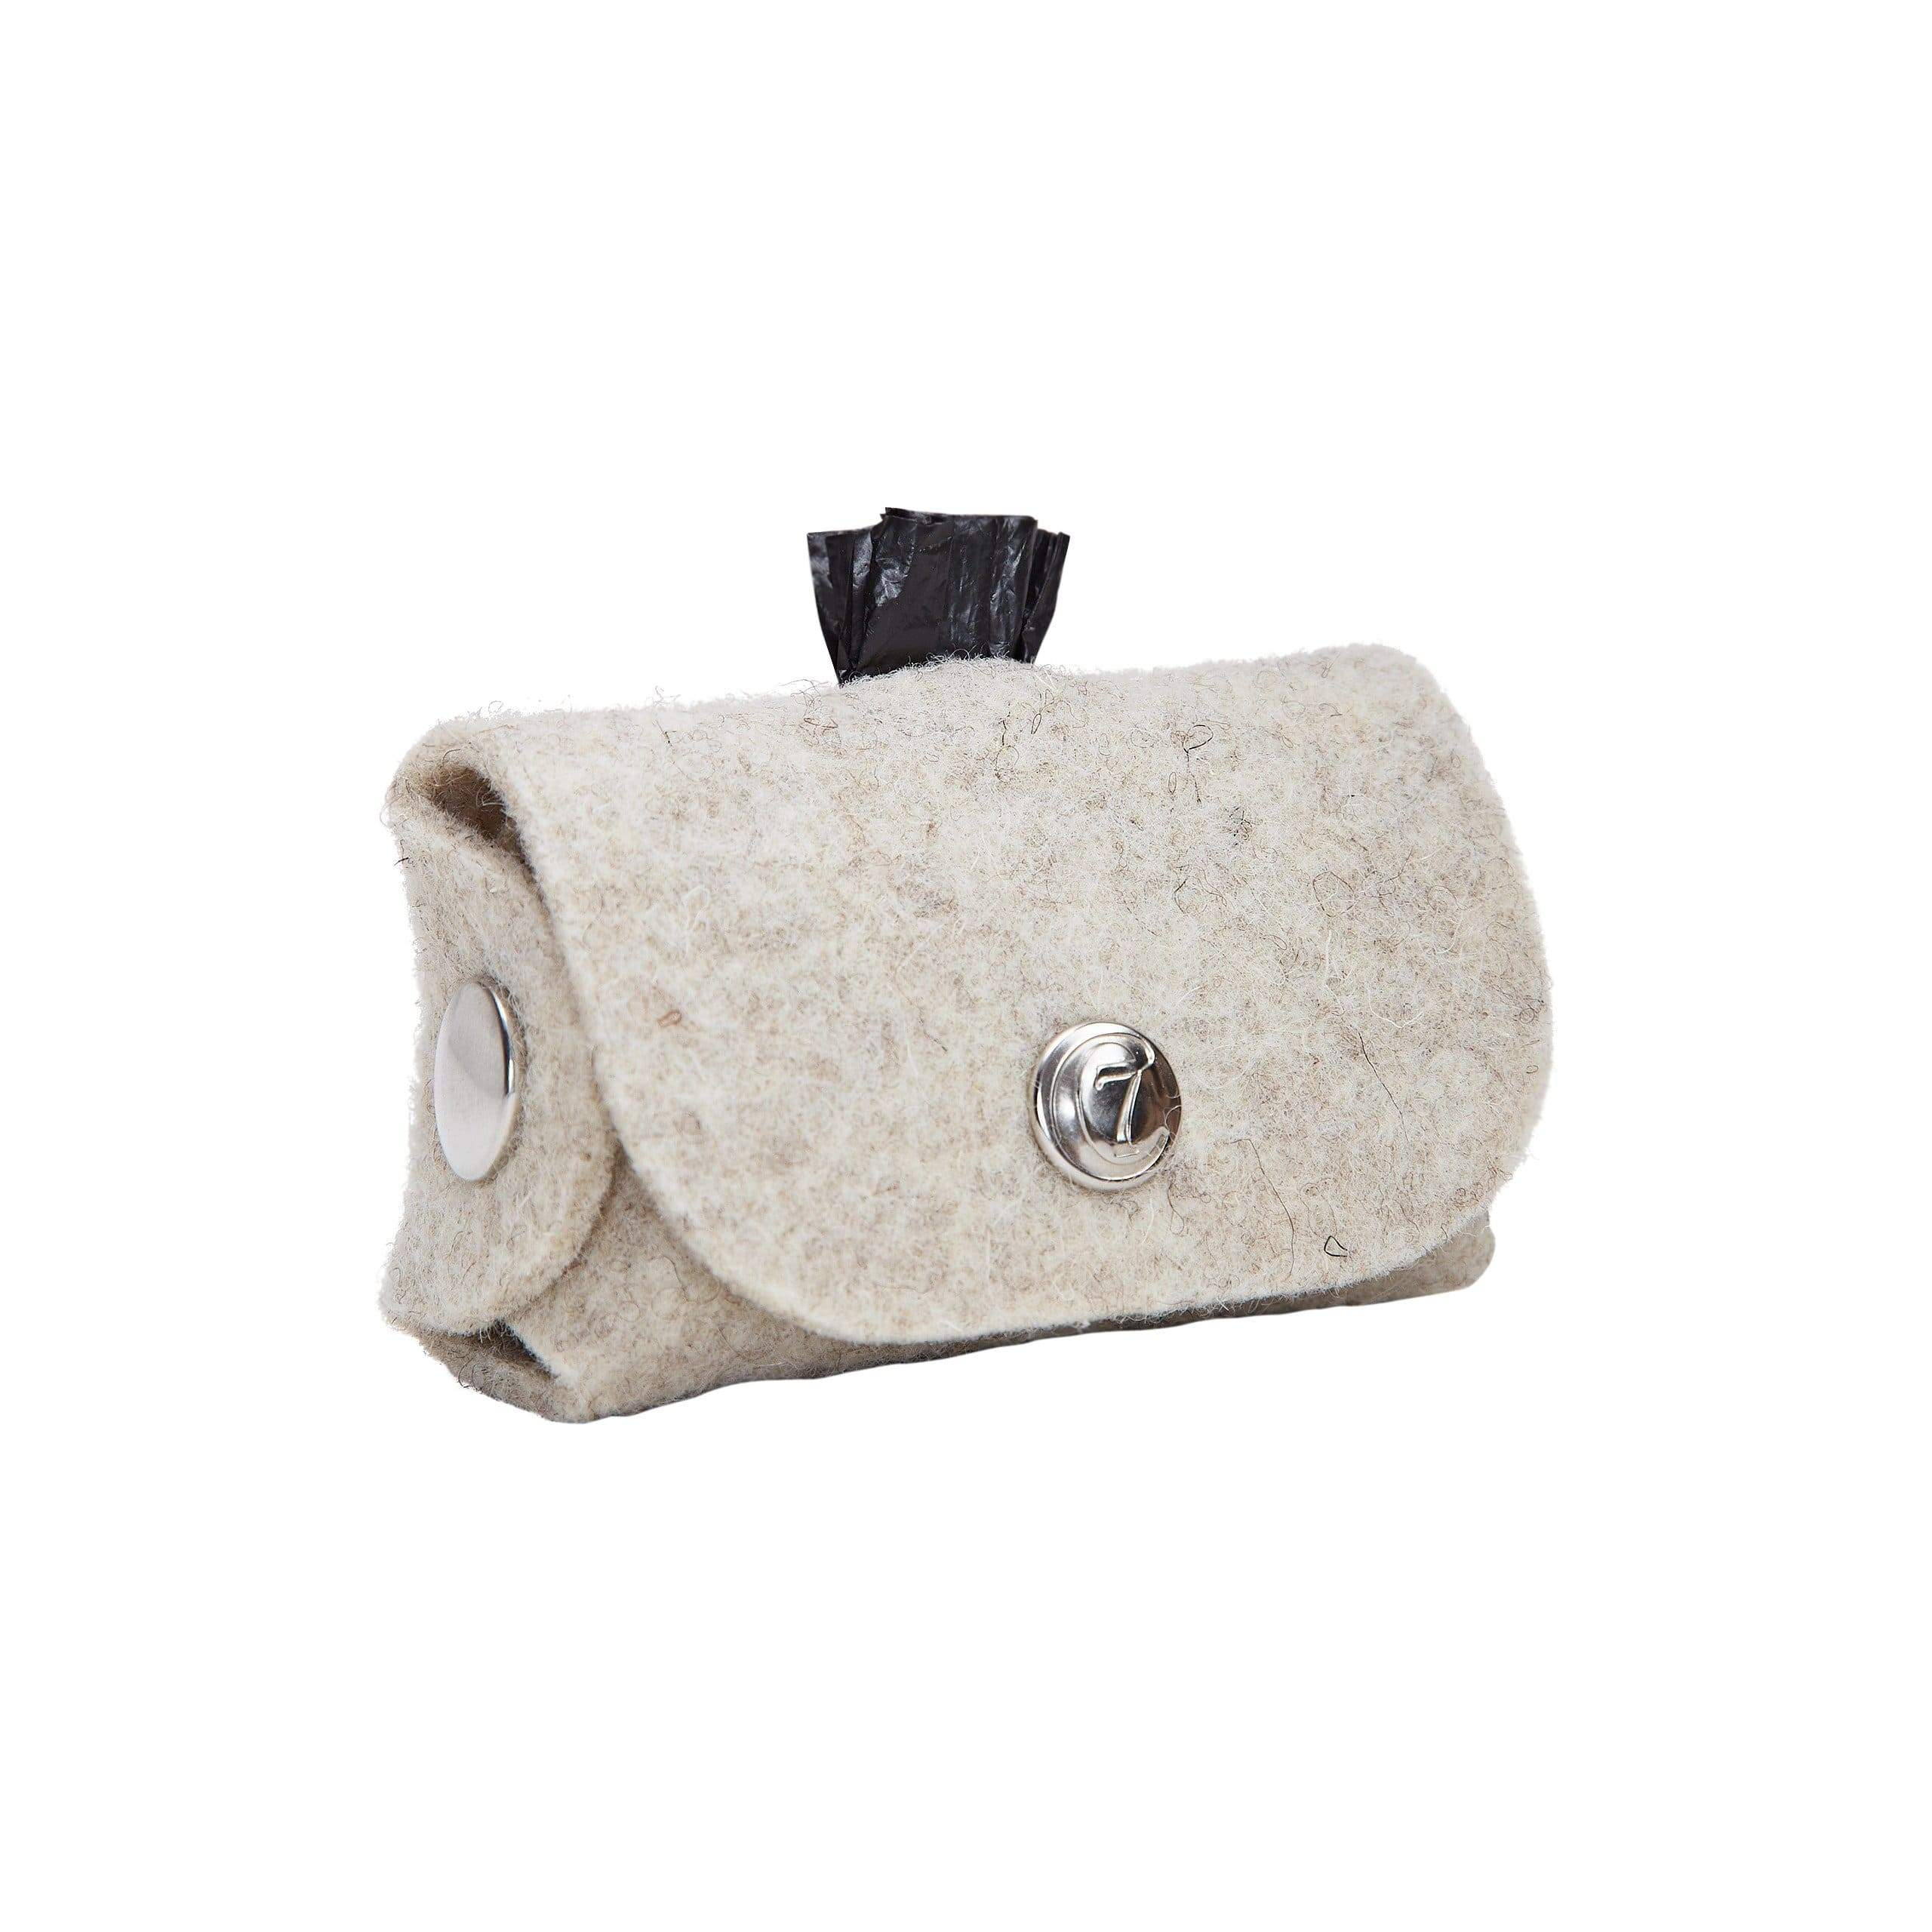 Cloud 7 Doggy-Do Leash Bag - Felt